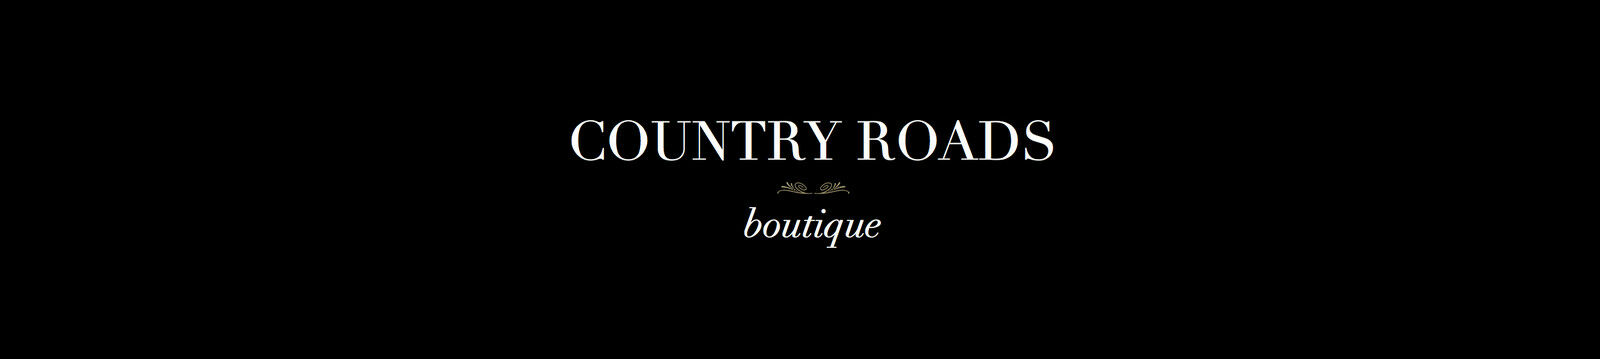 COUNTRY ROADS boutique